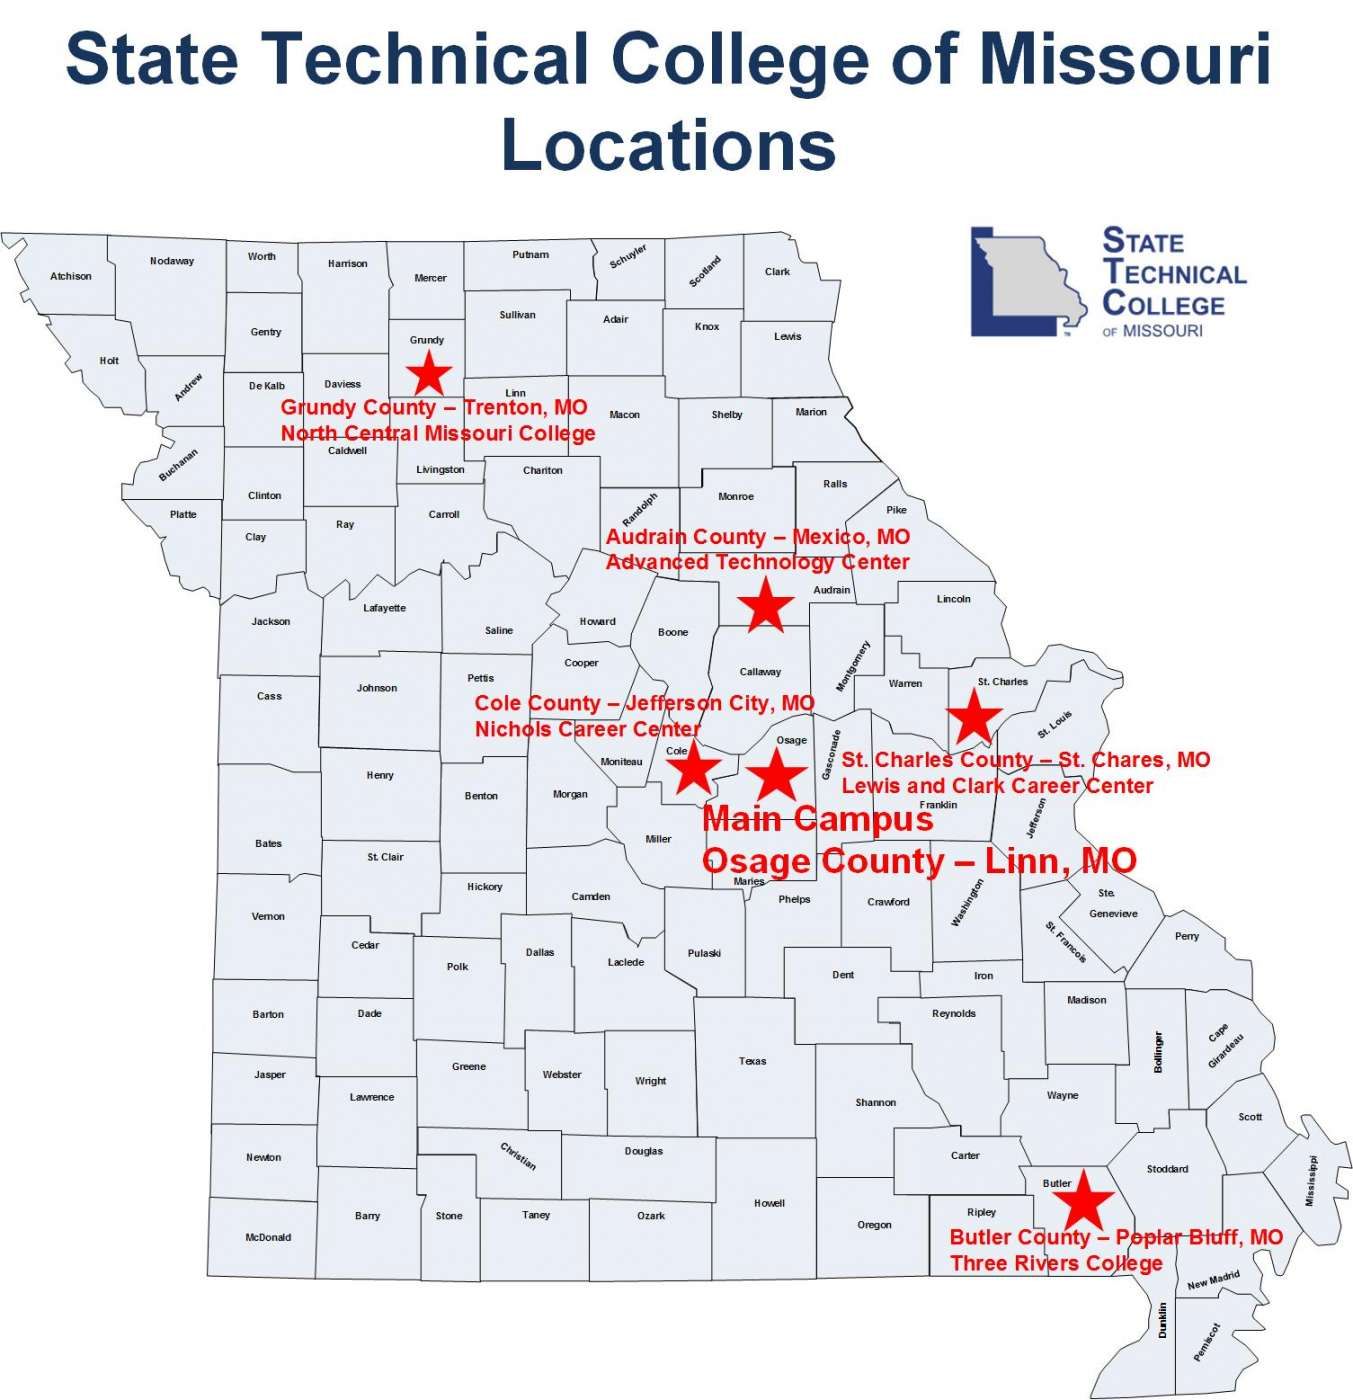 Map Directions State Technical College Of Missouri - Map of missiouri